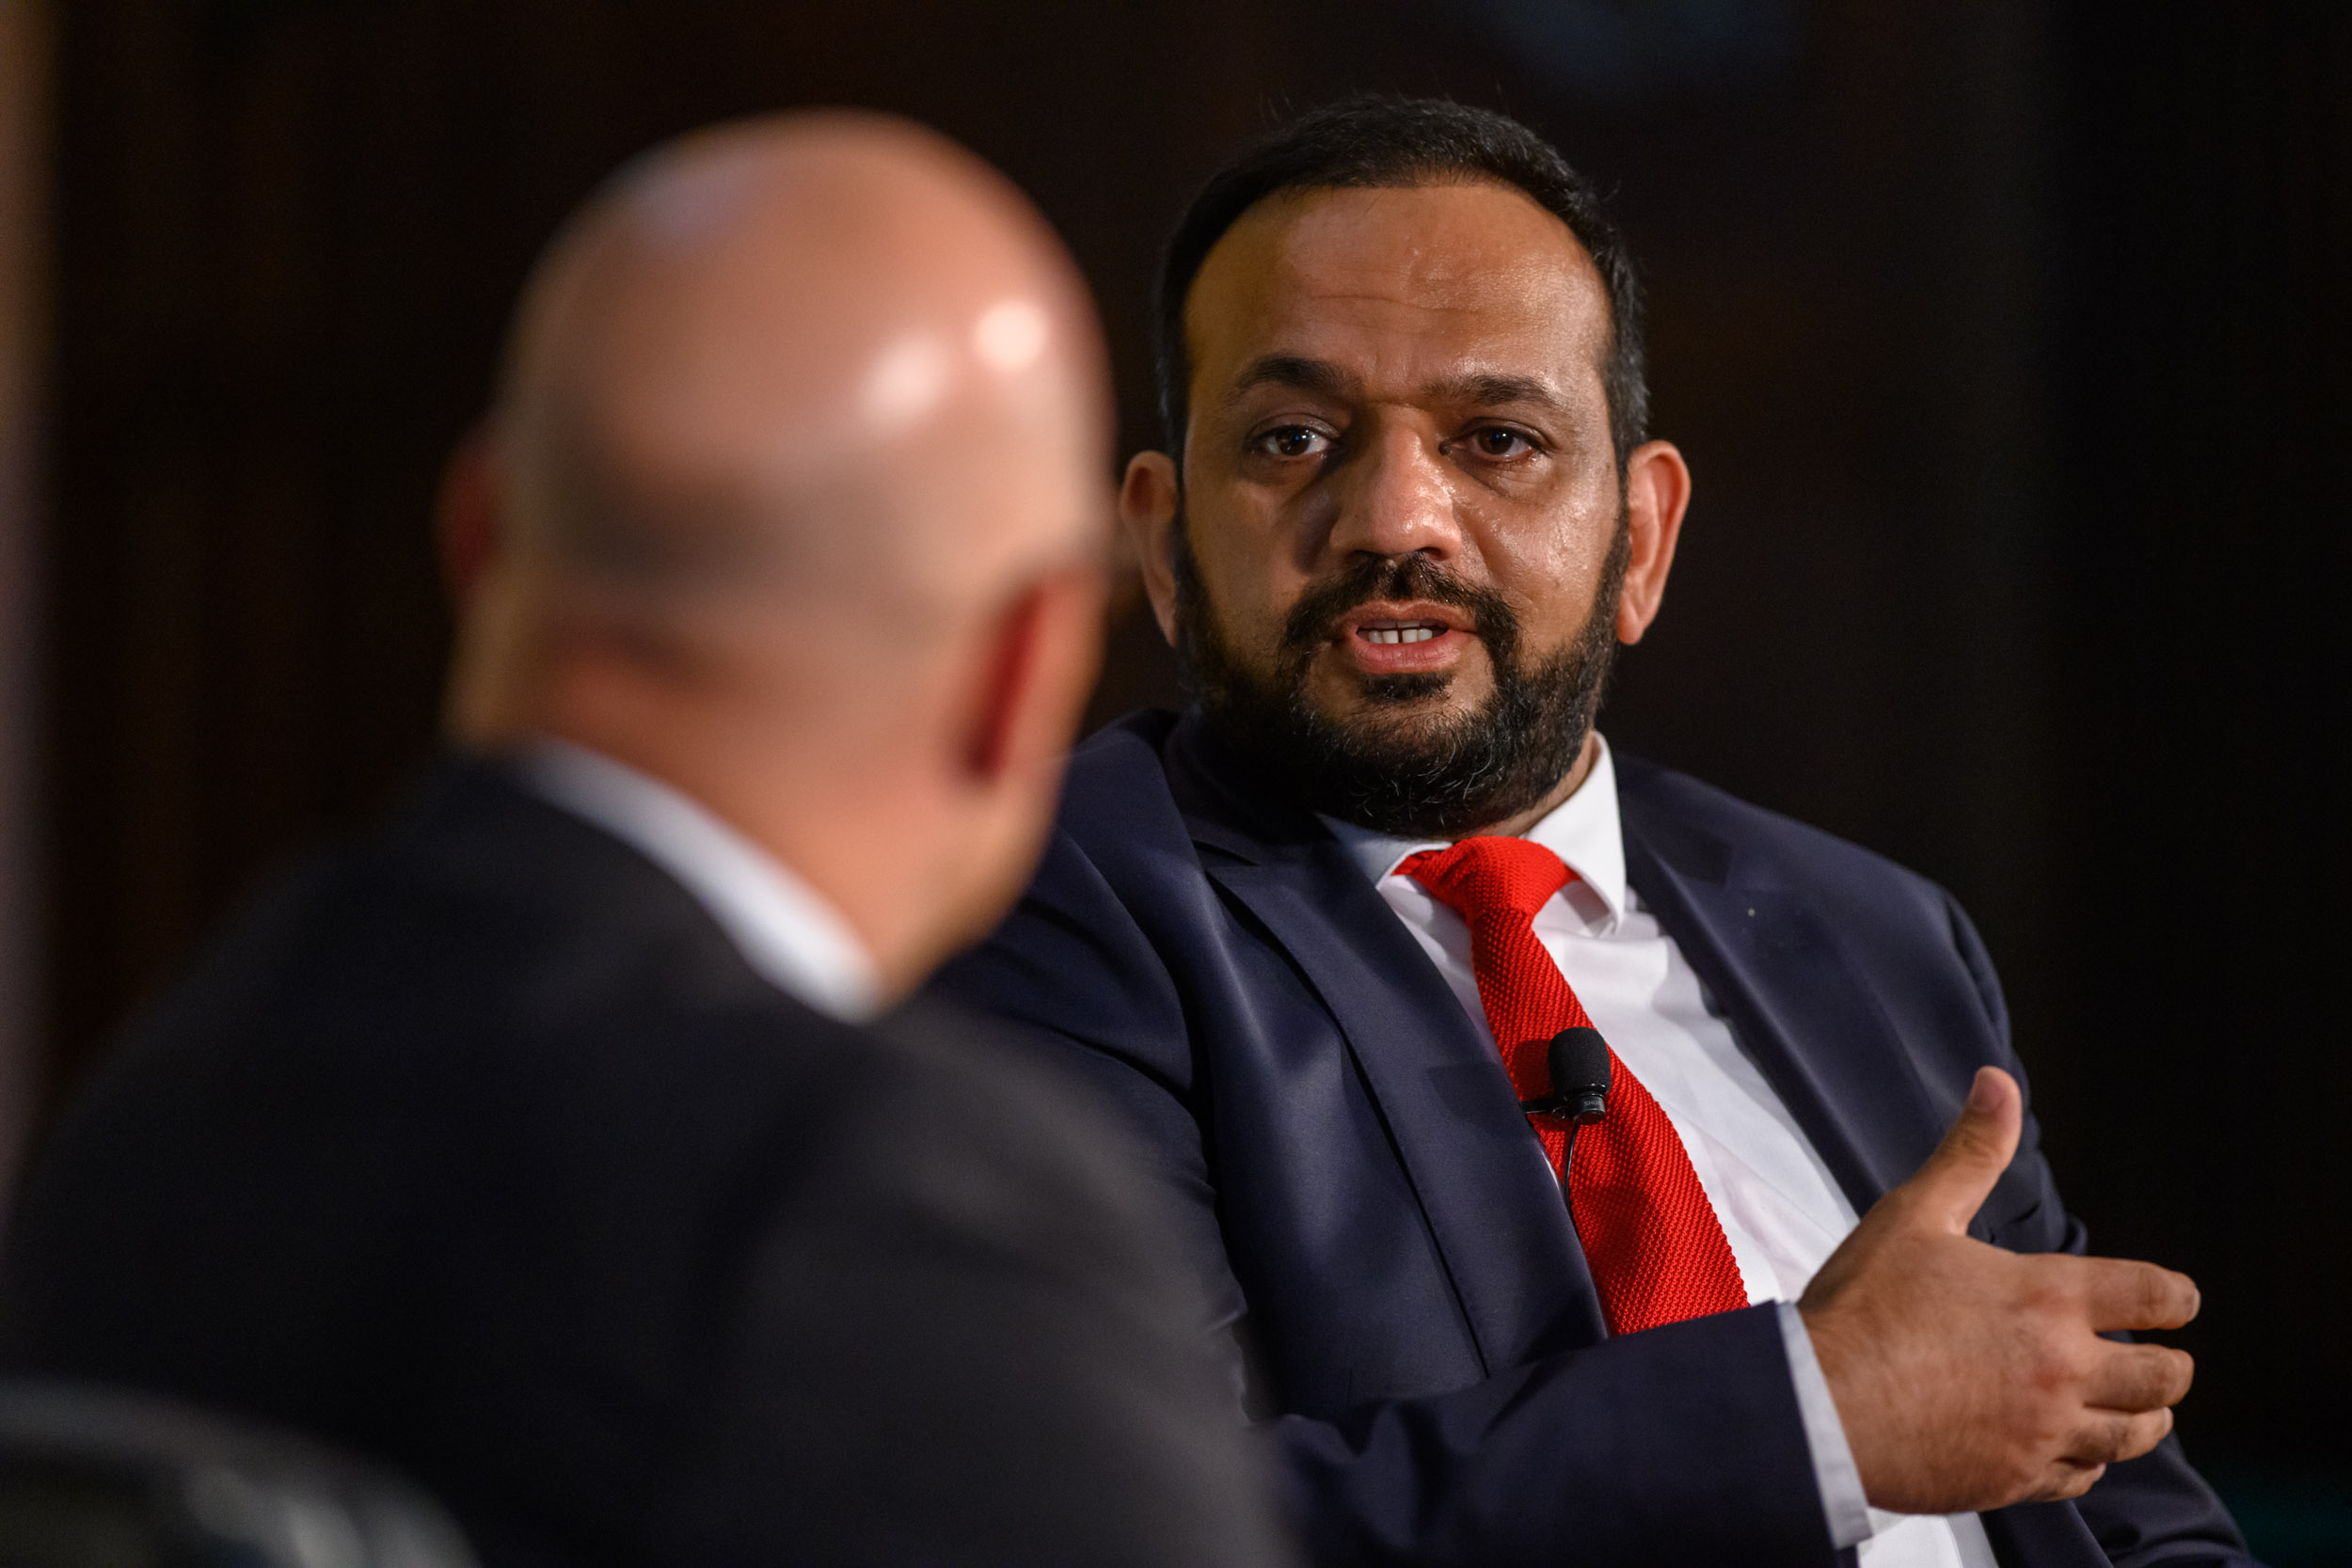 Former Afghan Finance Minister Khalid Payenda, wearing a white shirt and red tie, faces SFS Dean Joel Hellman